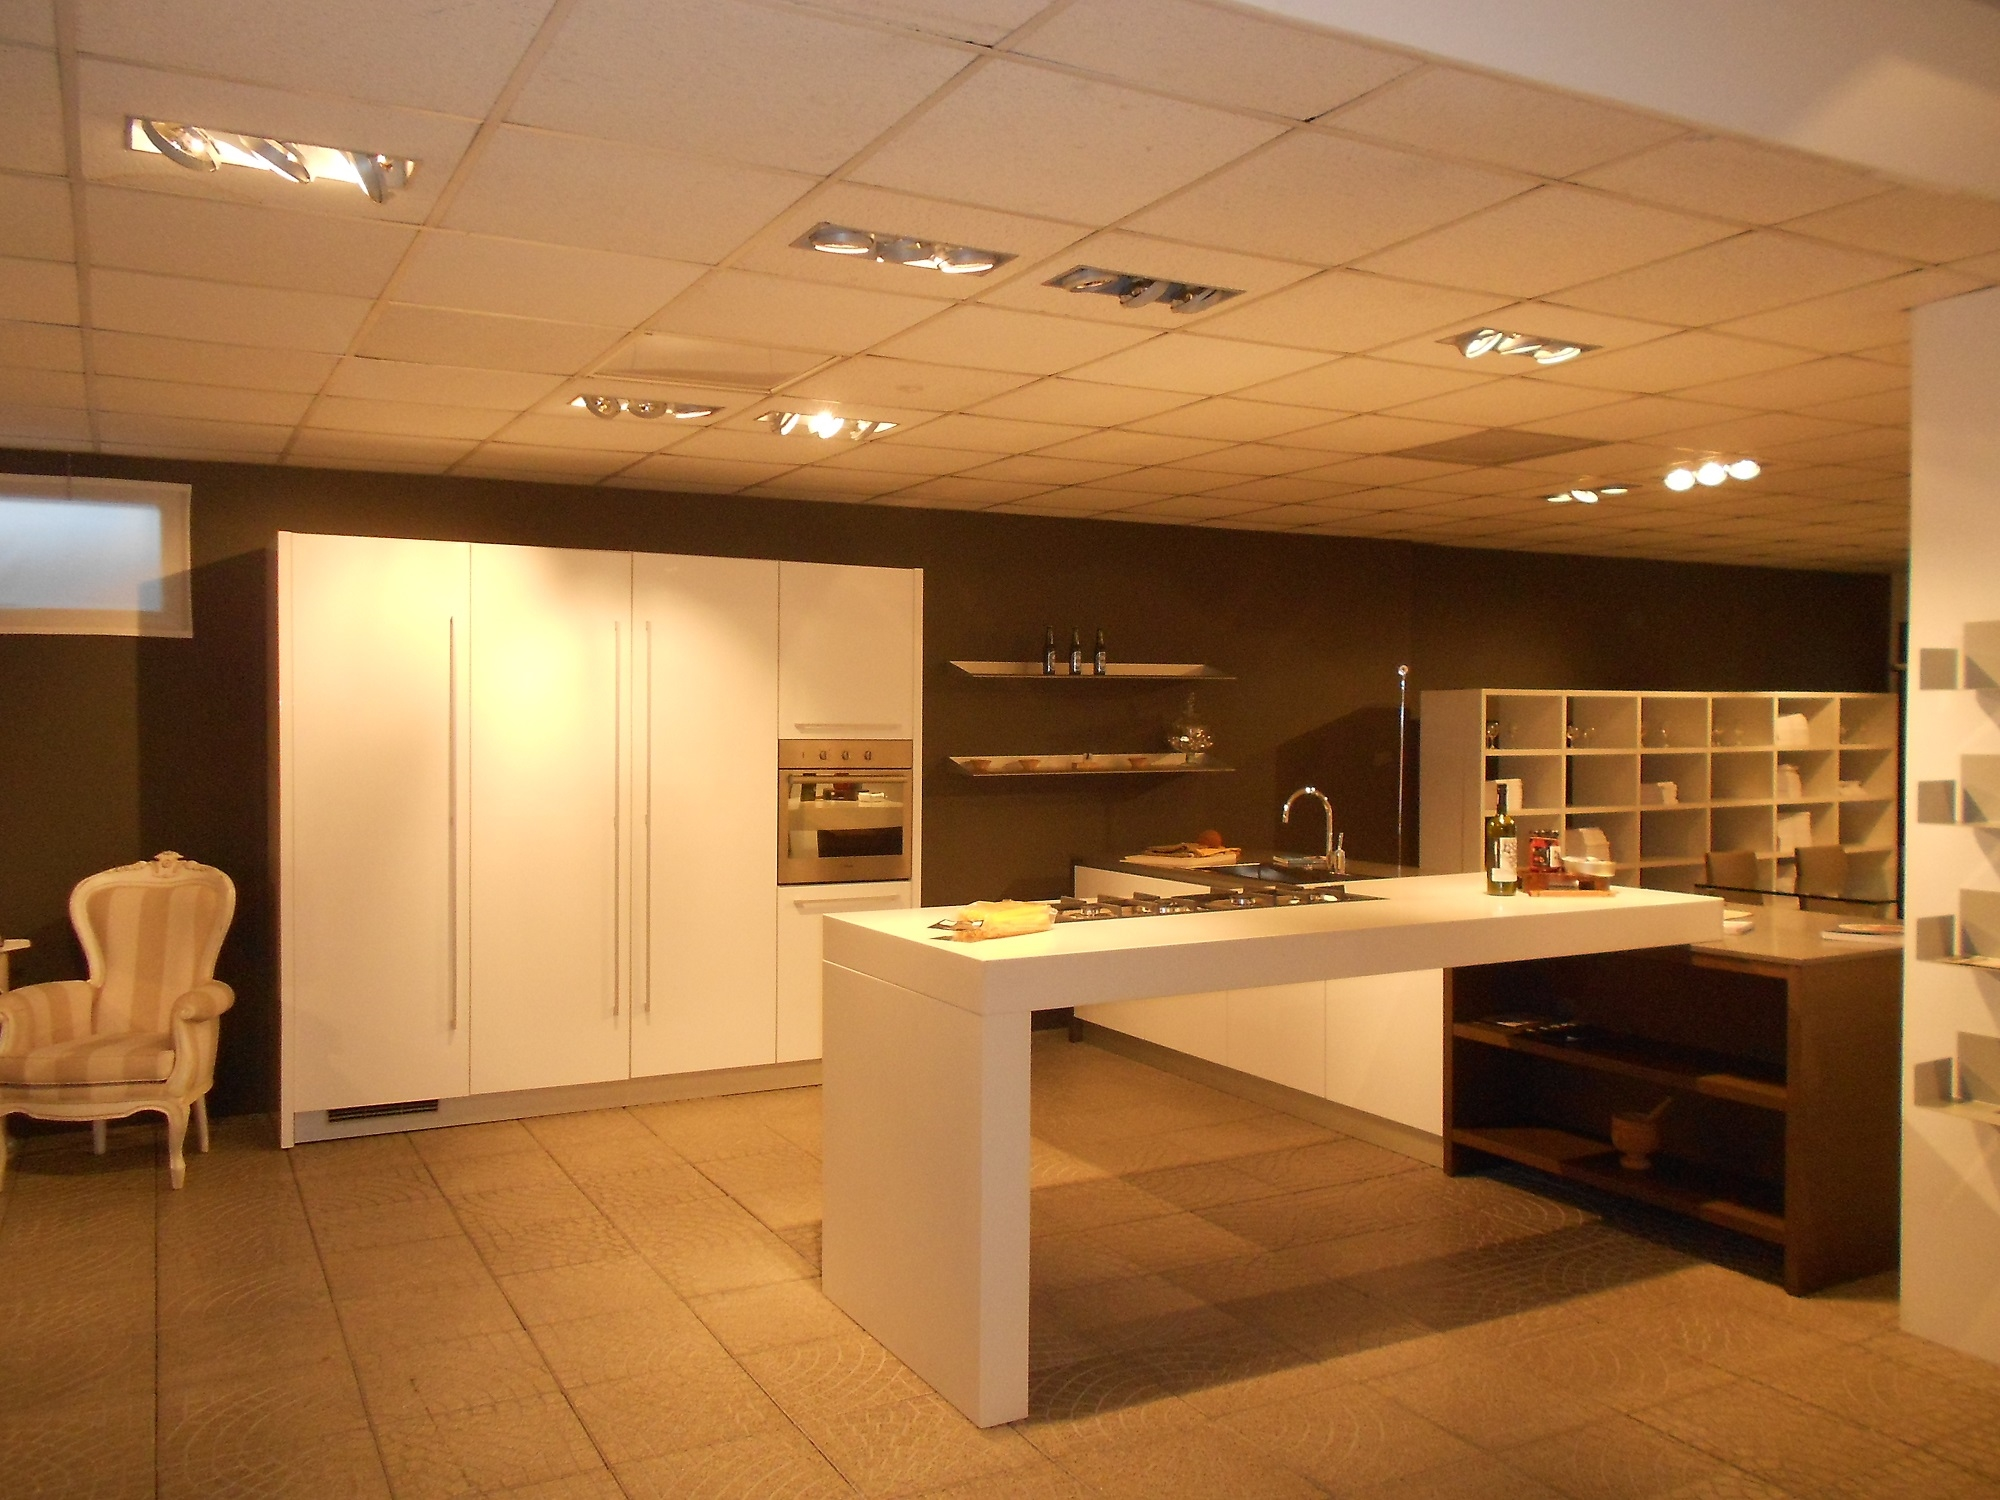 Cucine lombardia affordable cucine usate cucine usate - Cucine usate lombardia ...